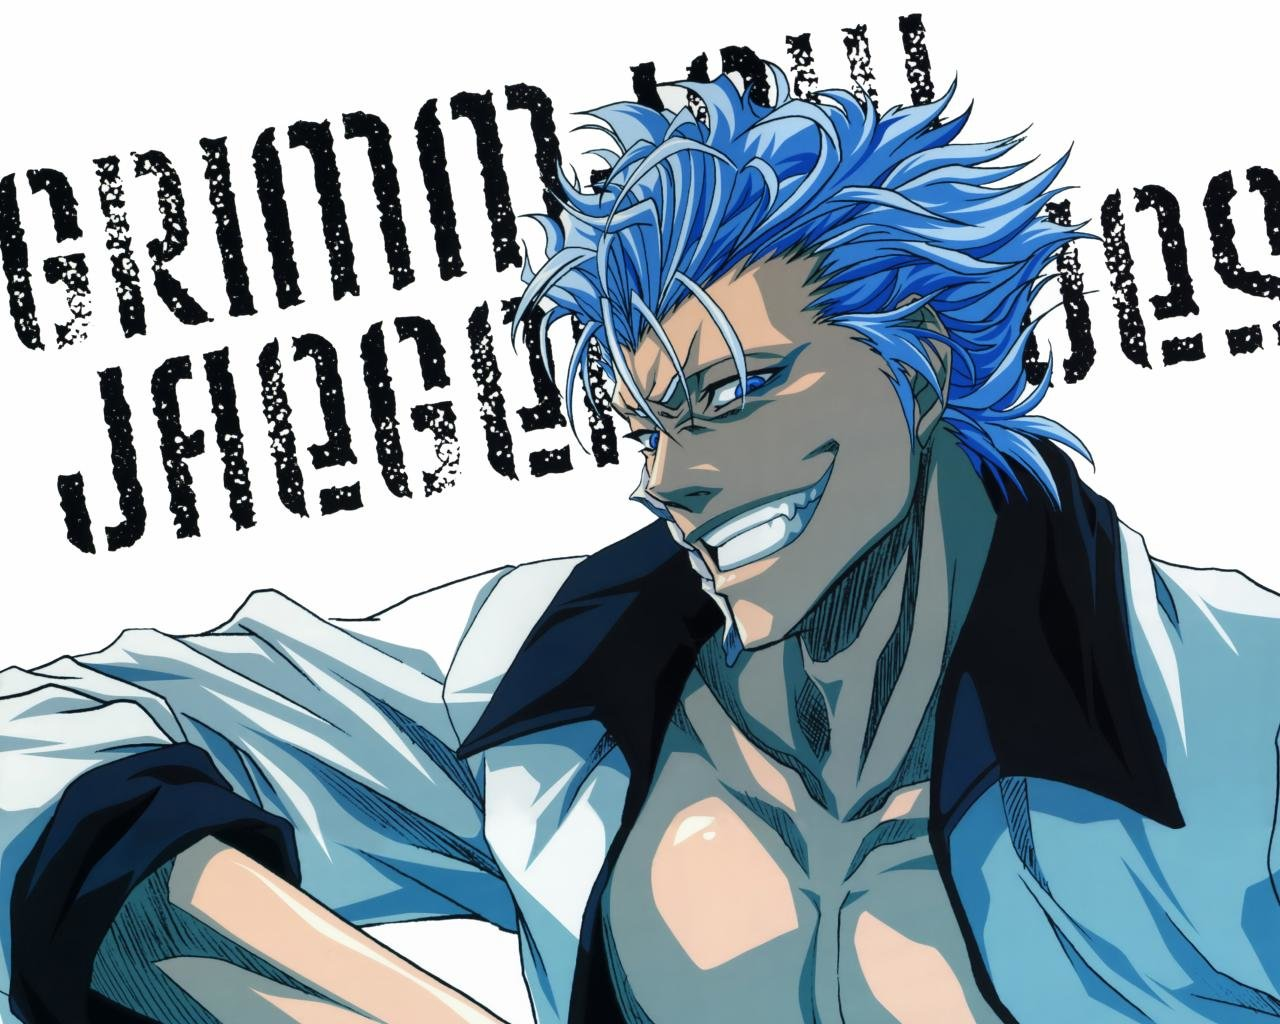 Awesome Grimmjow Jaegerjaquez free wallpaper ID:416661 for hd 1280x1024 desktop